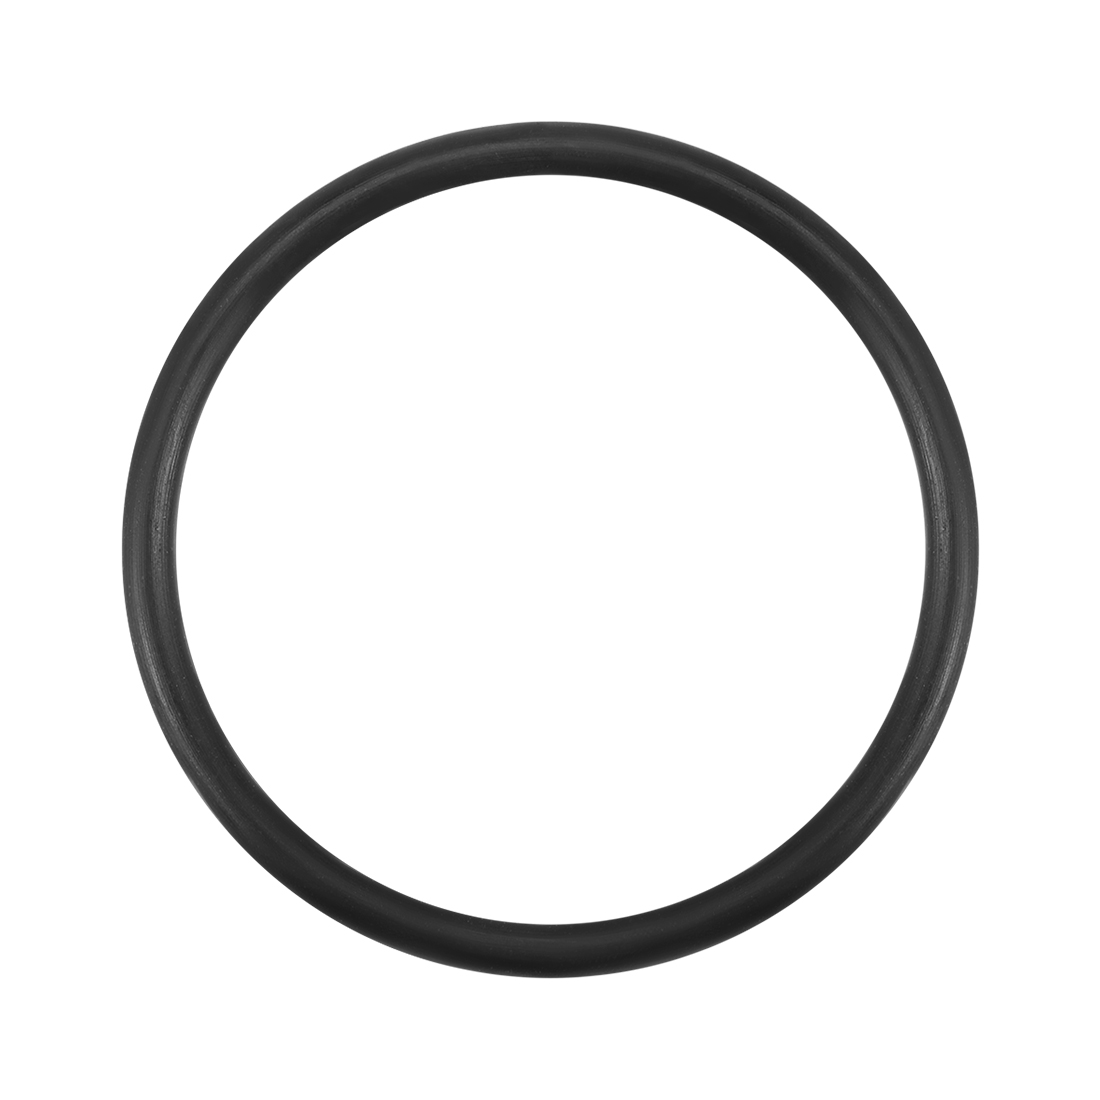 O-Rings Nitrile Rubber 23mm x 26.6mm x 1.8mm Round Seal Gasket 20Pcs